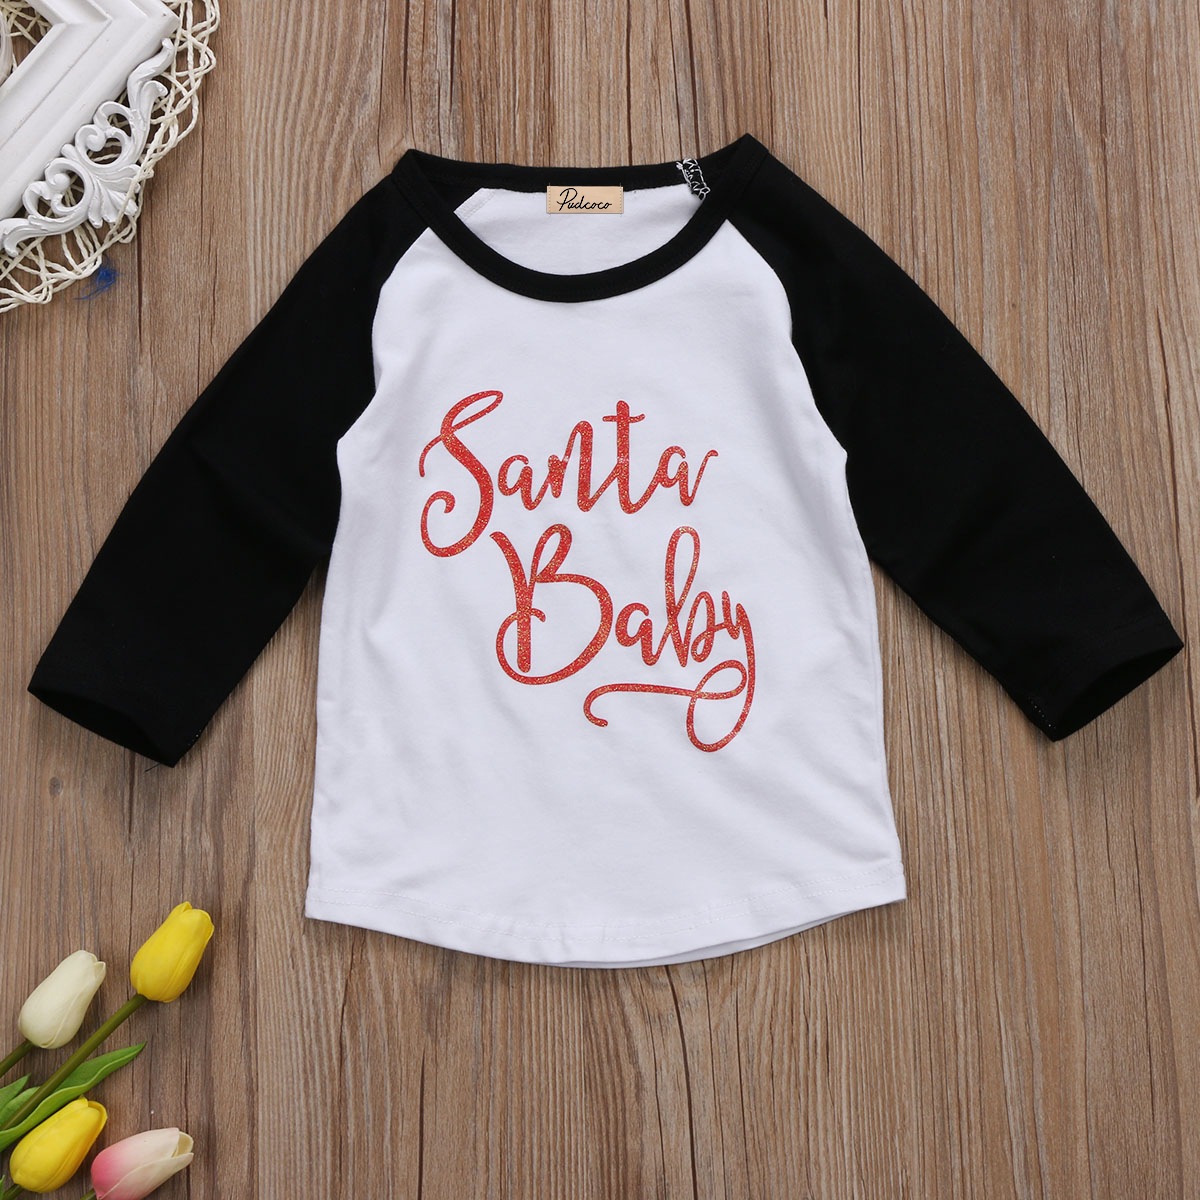 1d90e3bc436 Baby Boy Girl Kids Christmas Cotton T shirt Tops Child Long Sleeve Tee  Blouse Xmas Clothing 1 4T-in T-Shirts from Mother   Kids on Aliexpress.com